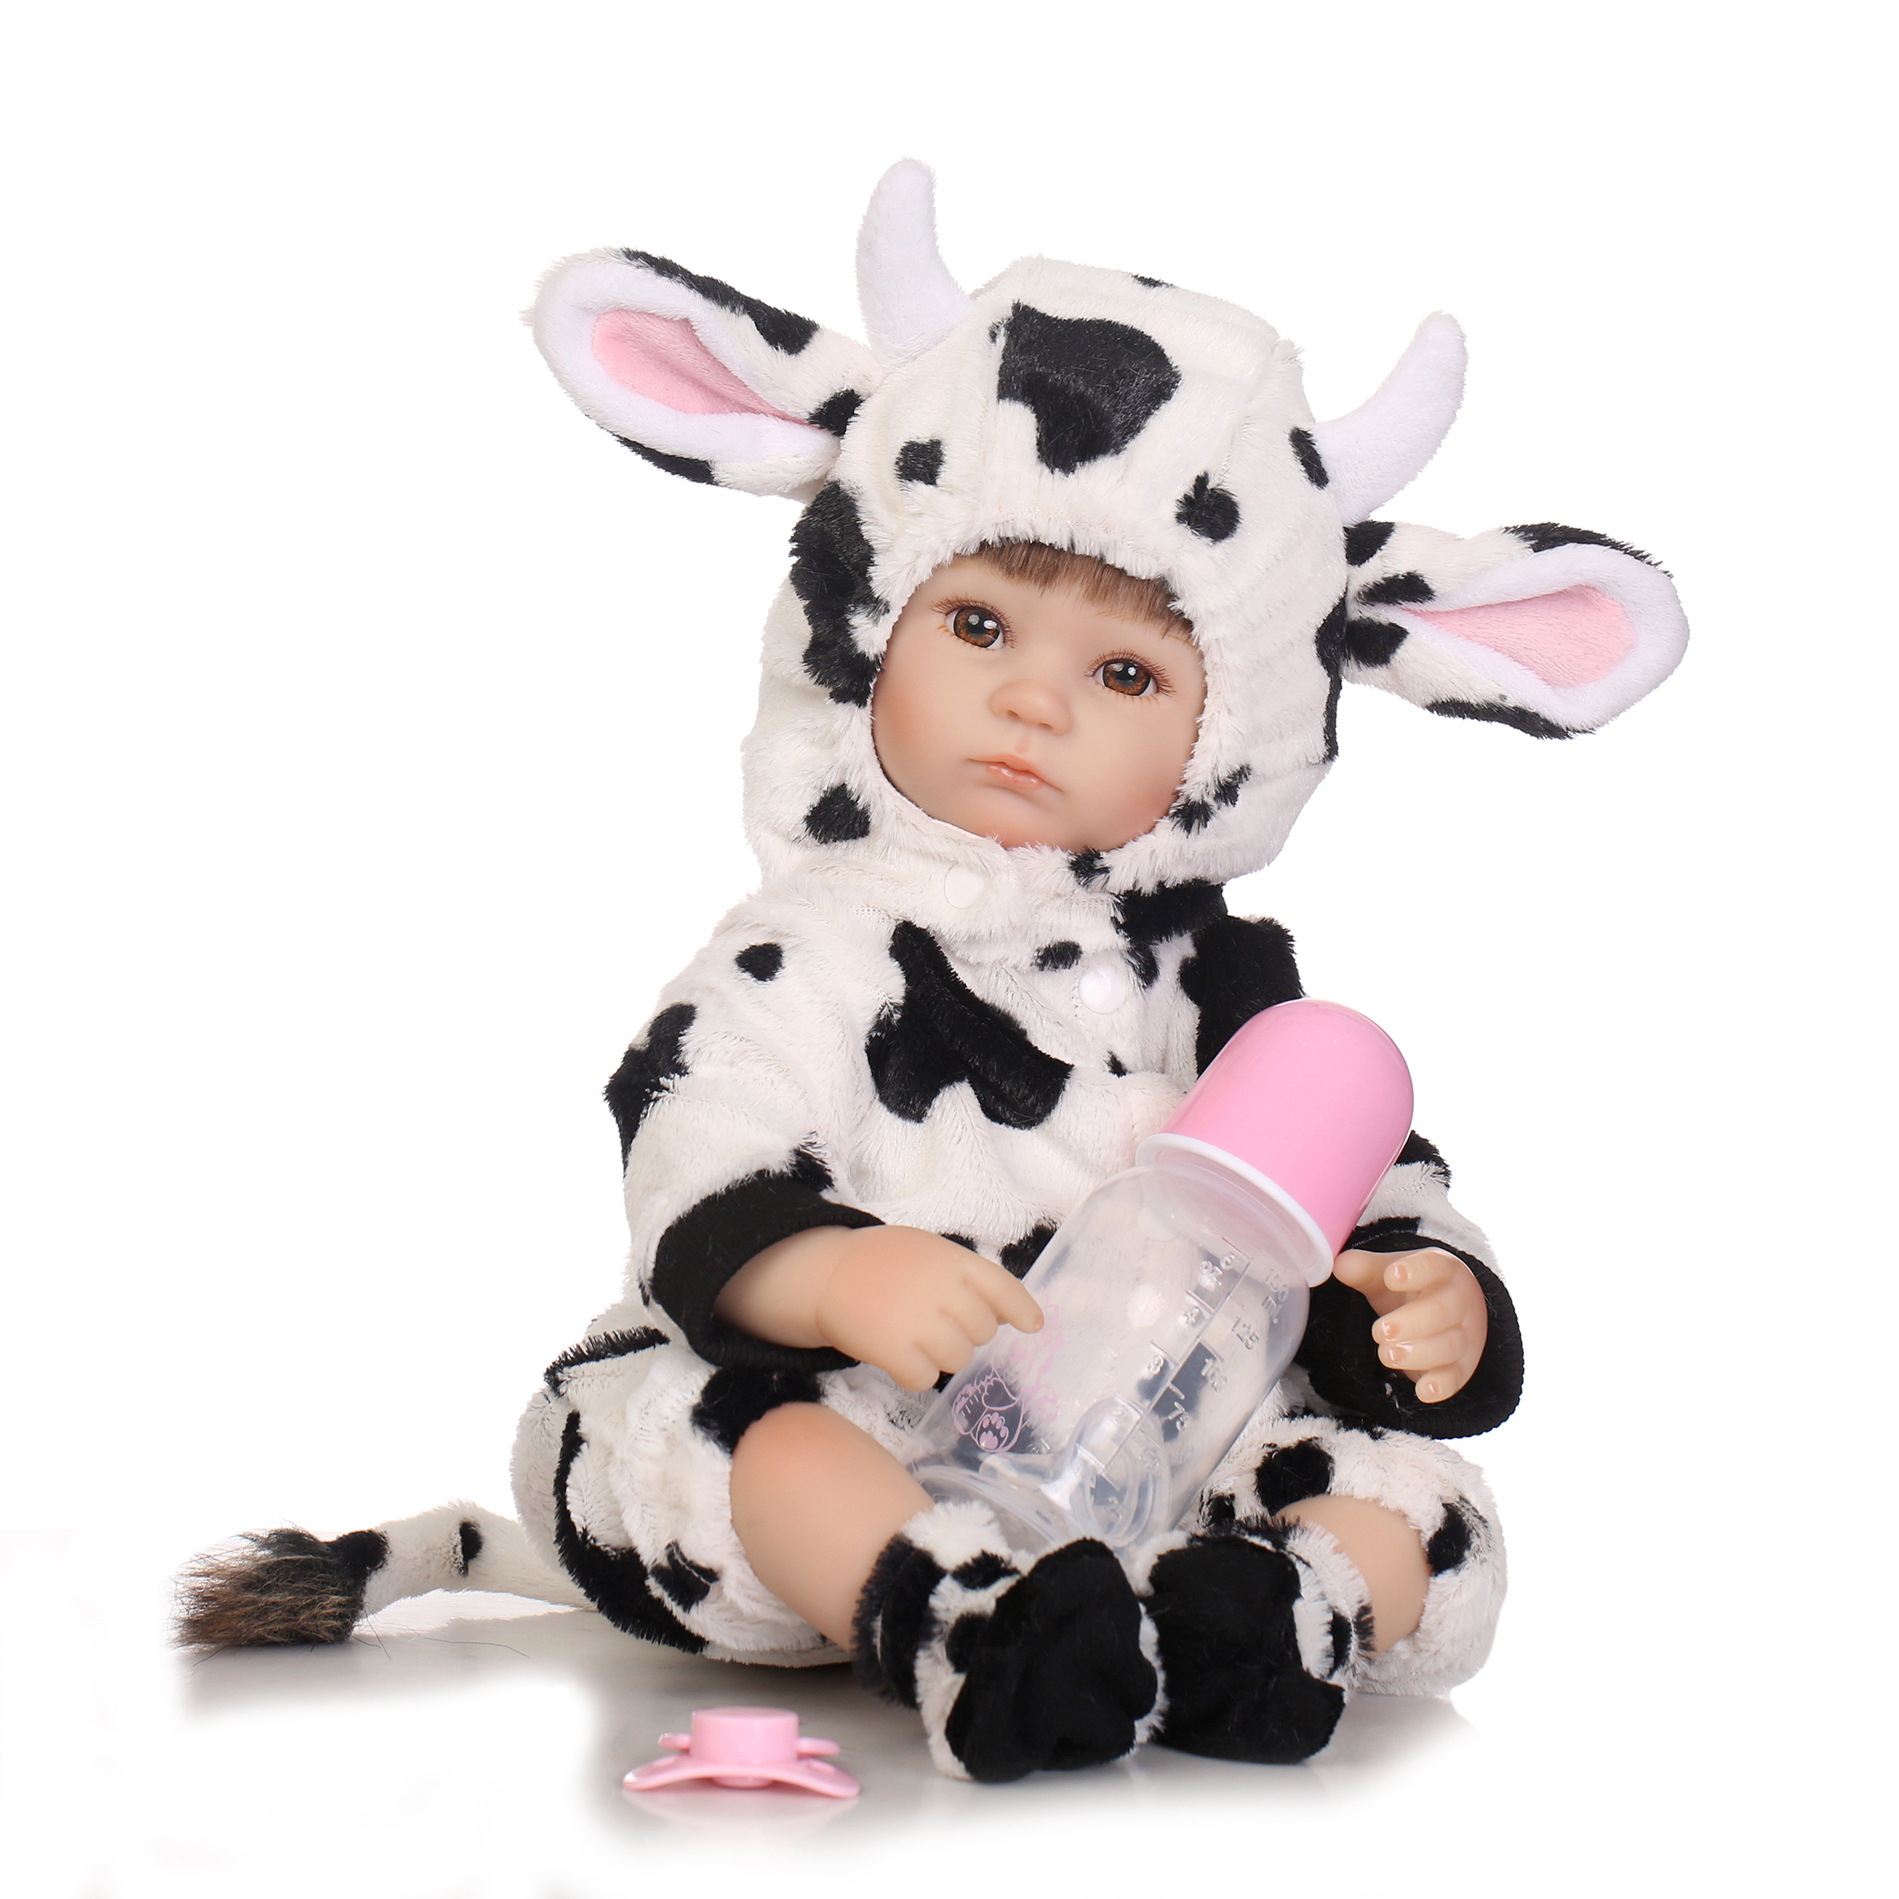 40cm Silicone reborn dolls toys for Baby Appease doll Lifelike Emulation Dolls play house toy Cute dairy cattle clothing dolls цена